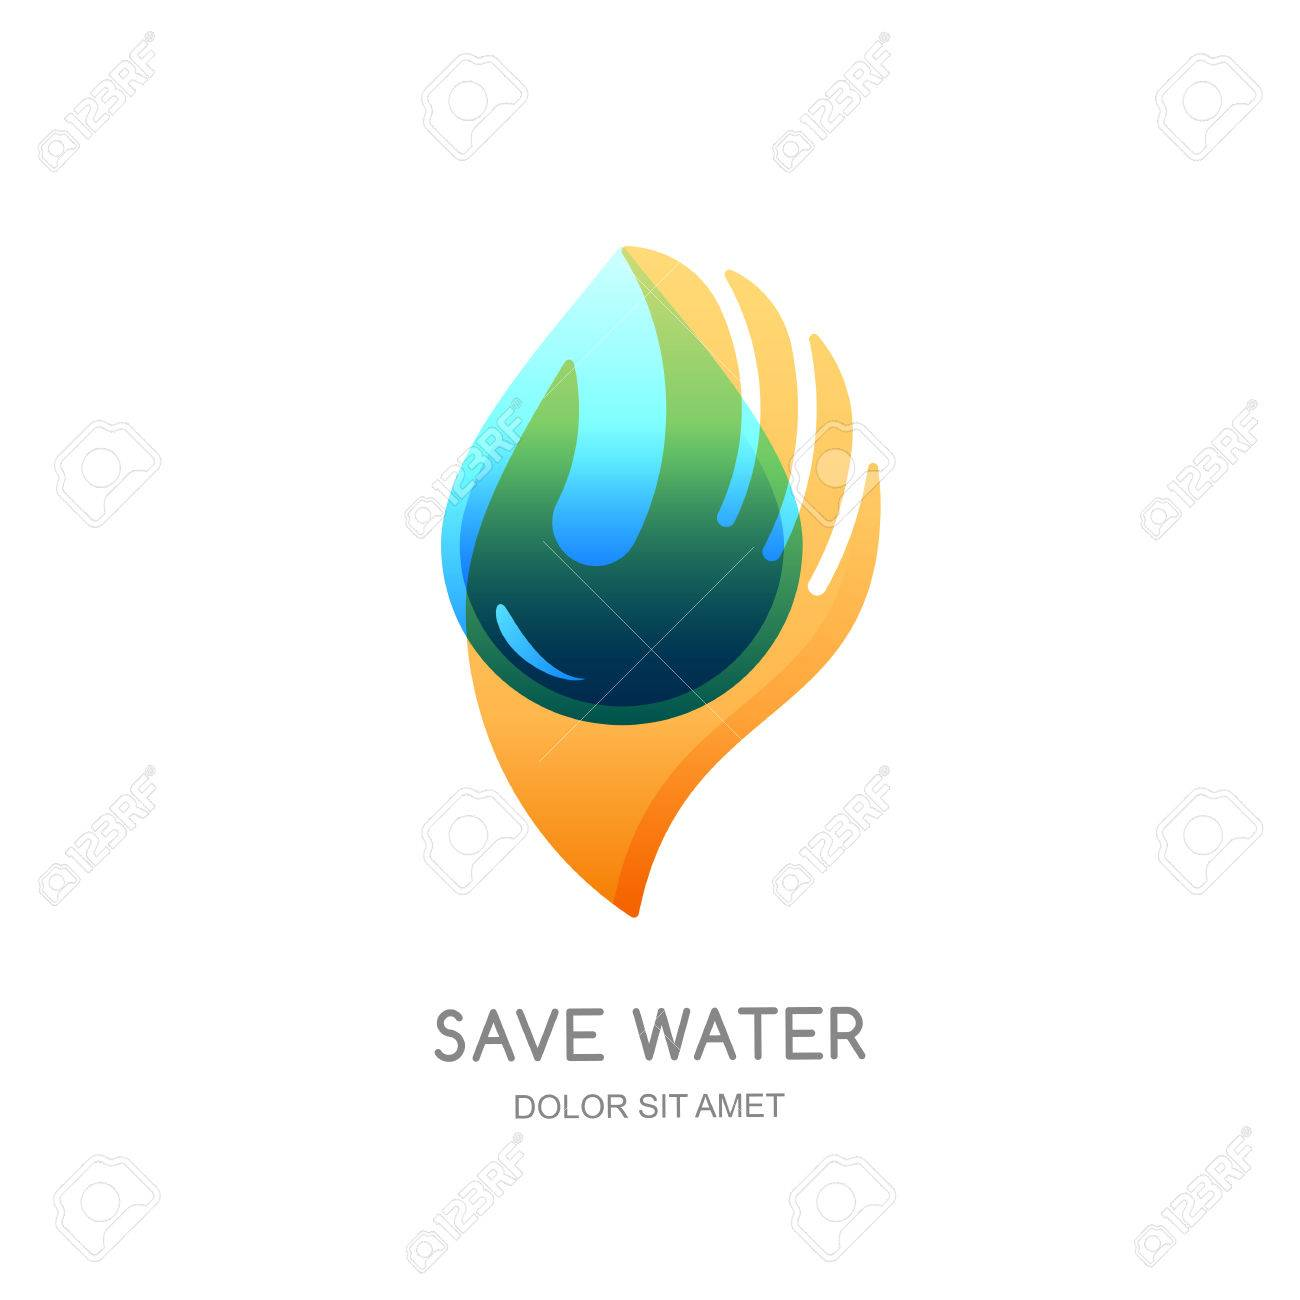 Save Water Vector Logo Design Template Abstract Transparent Royalty Free Cliparts Vectors And Stock Illustration Image 85015773